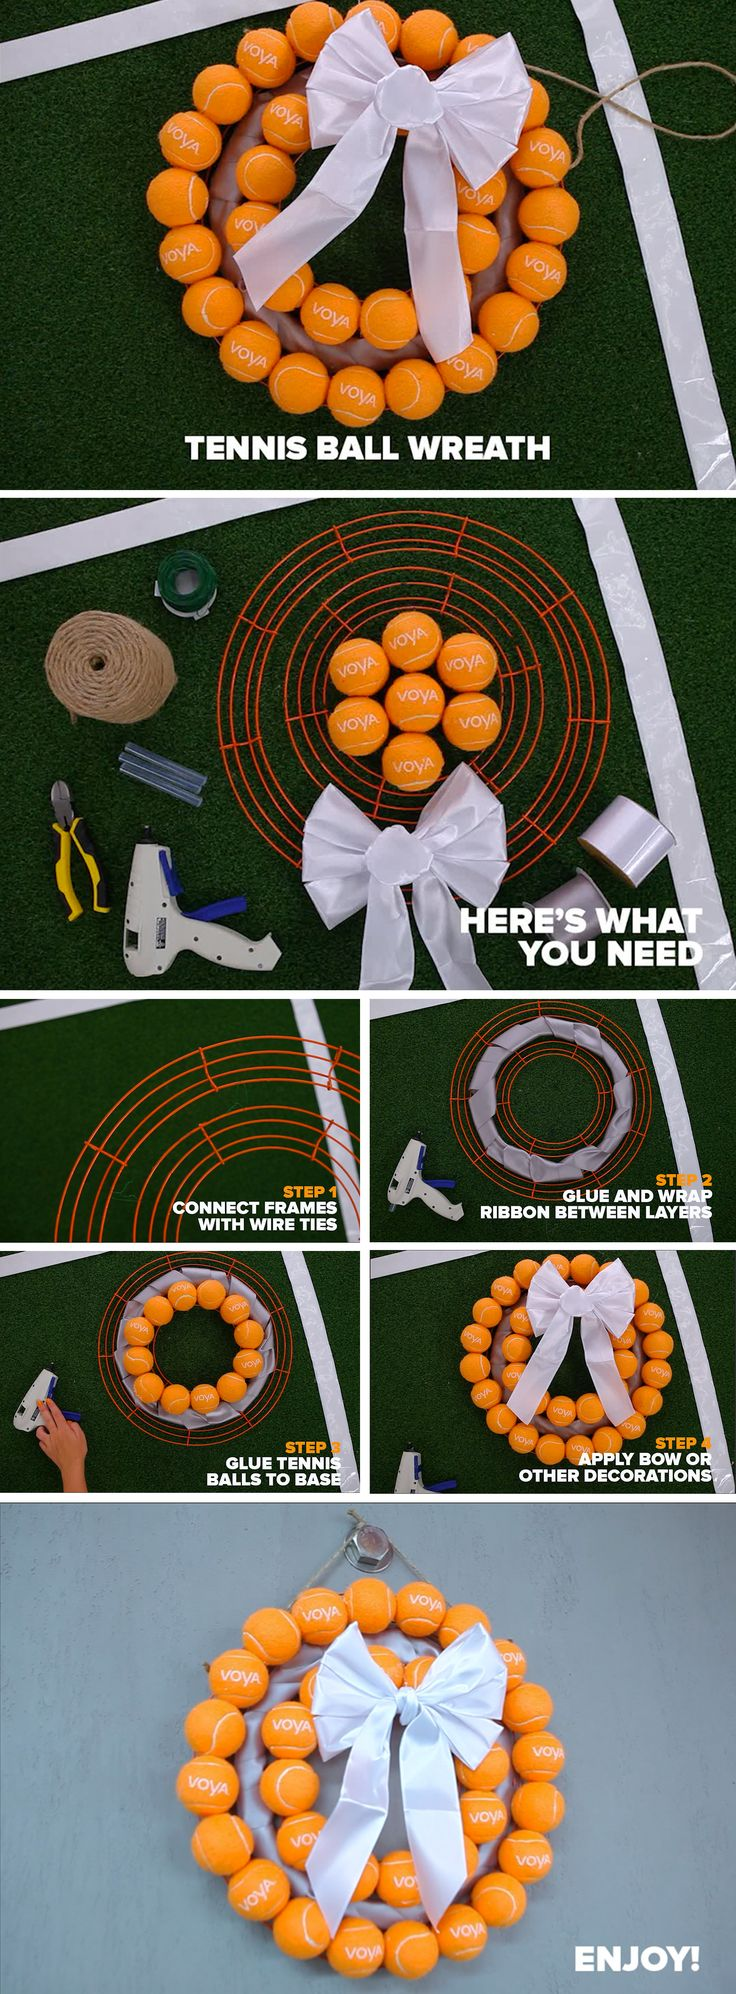 WHAT YOU NEED: Tennis Balls, Wire Wreath Frame, Wire, Wire Cutters, Hot Glue, Ribbon, Twine, Hook HOW TO MAKE: 1) Connect wreath frames together with wire ties. Cut excess with cutters (use caution!). 2) Wrap and glue ribbon between wreath layers to create covering. 3) Glue tennis balls to wreath frame and set aside to dry. 4) Apply bows, ribbon or other decorative elements to customize your wreath! 5) Tie twine around wire frames to create a holder. 6) Hang your masterpiece where all can…